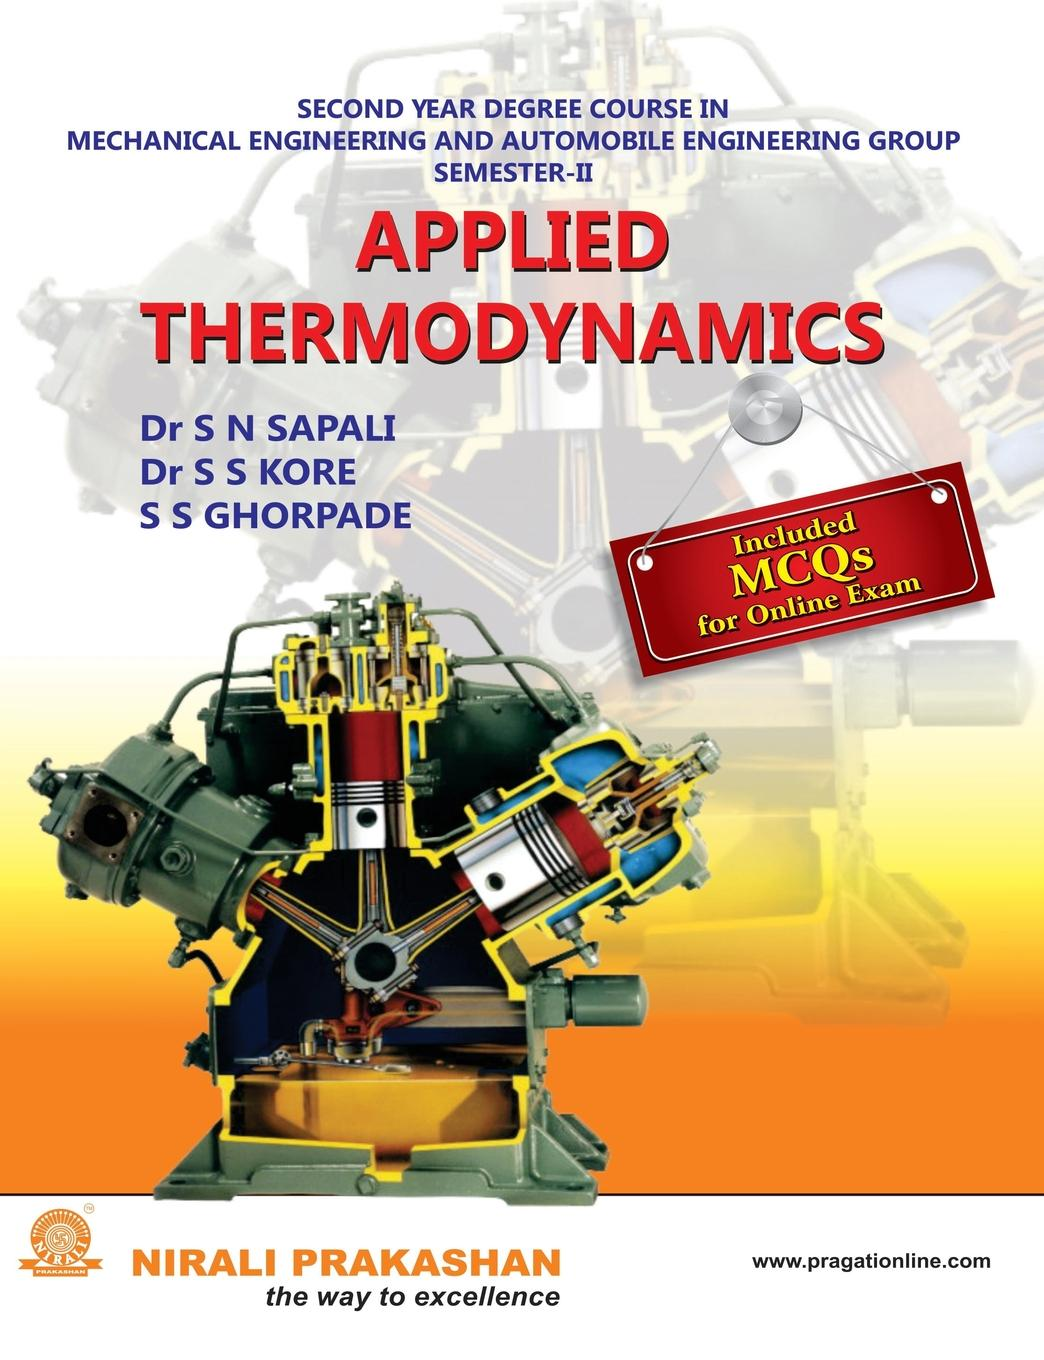 DR S S KORE, S S GHORPADE, DR S N SAPALI APPLIED THERMODYNAMICS ga202 mmc authentic and ic